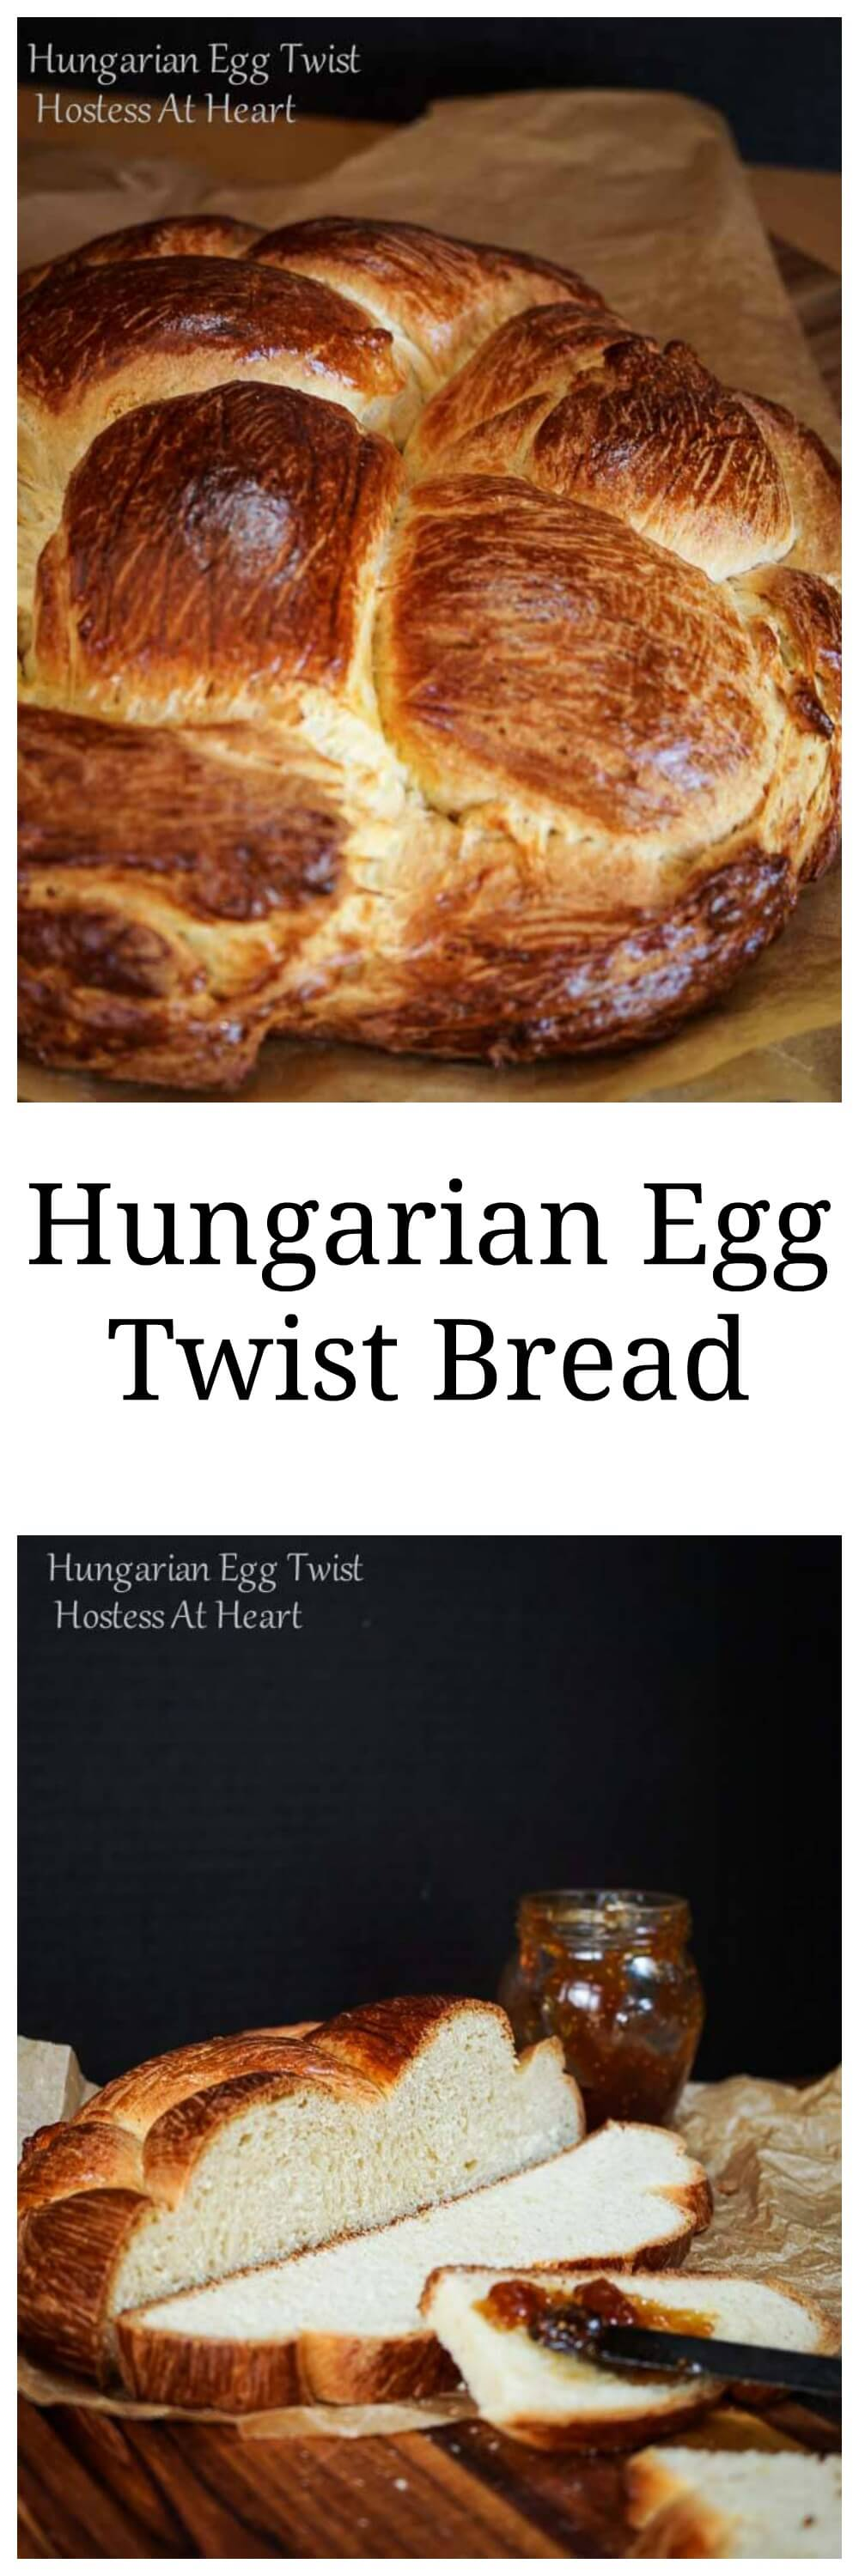 Hungarian Egg Twist bread is perfect for everyday or dressed up for a special occasion.  You can sprinkle in nuts and dried fruit or other additions to this sweetened bread or eat it as is.   HostessAtHeart.com